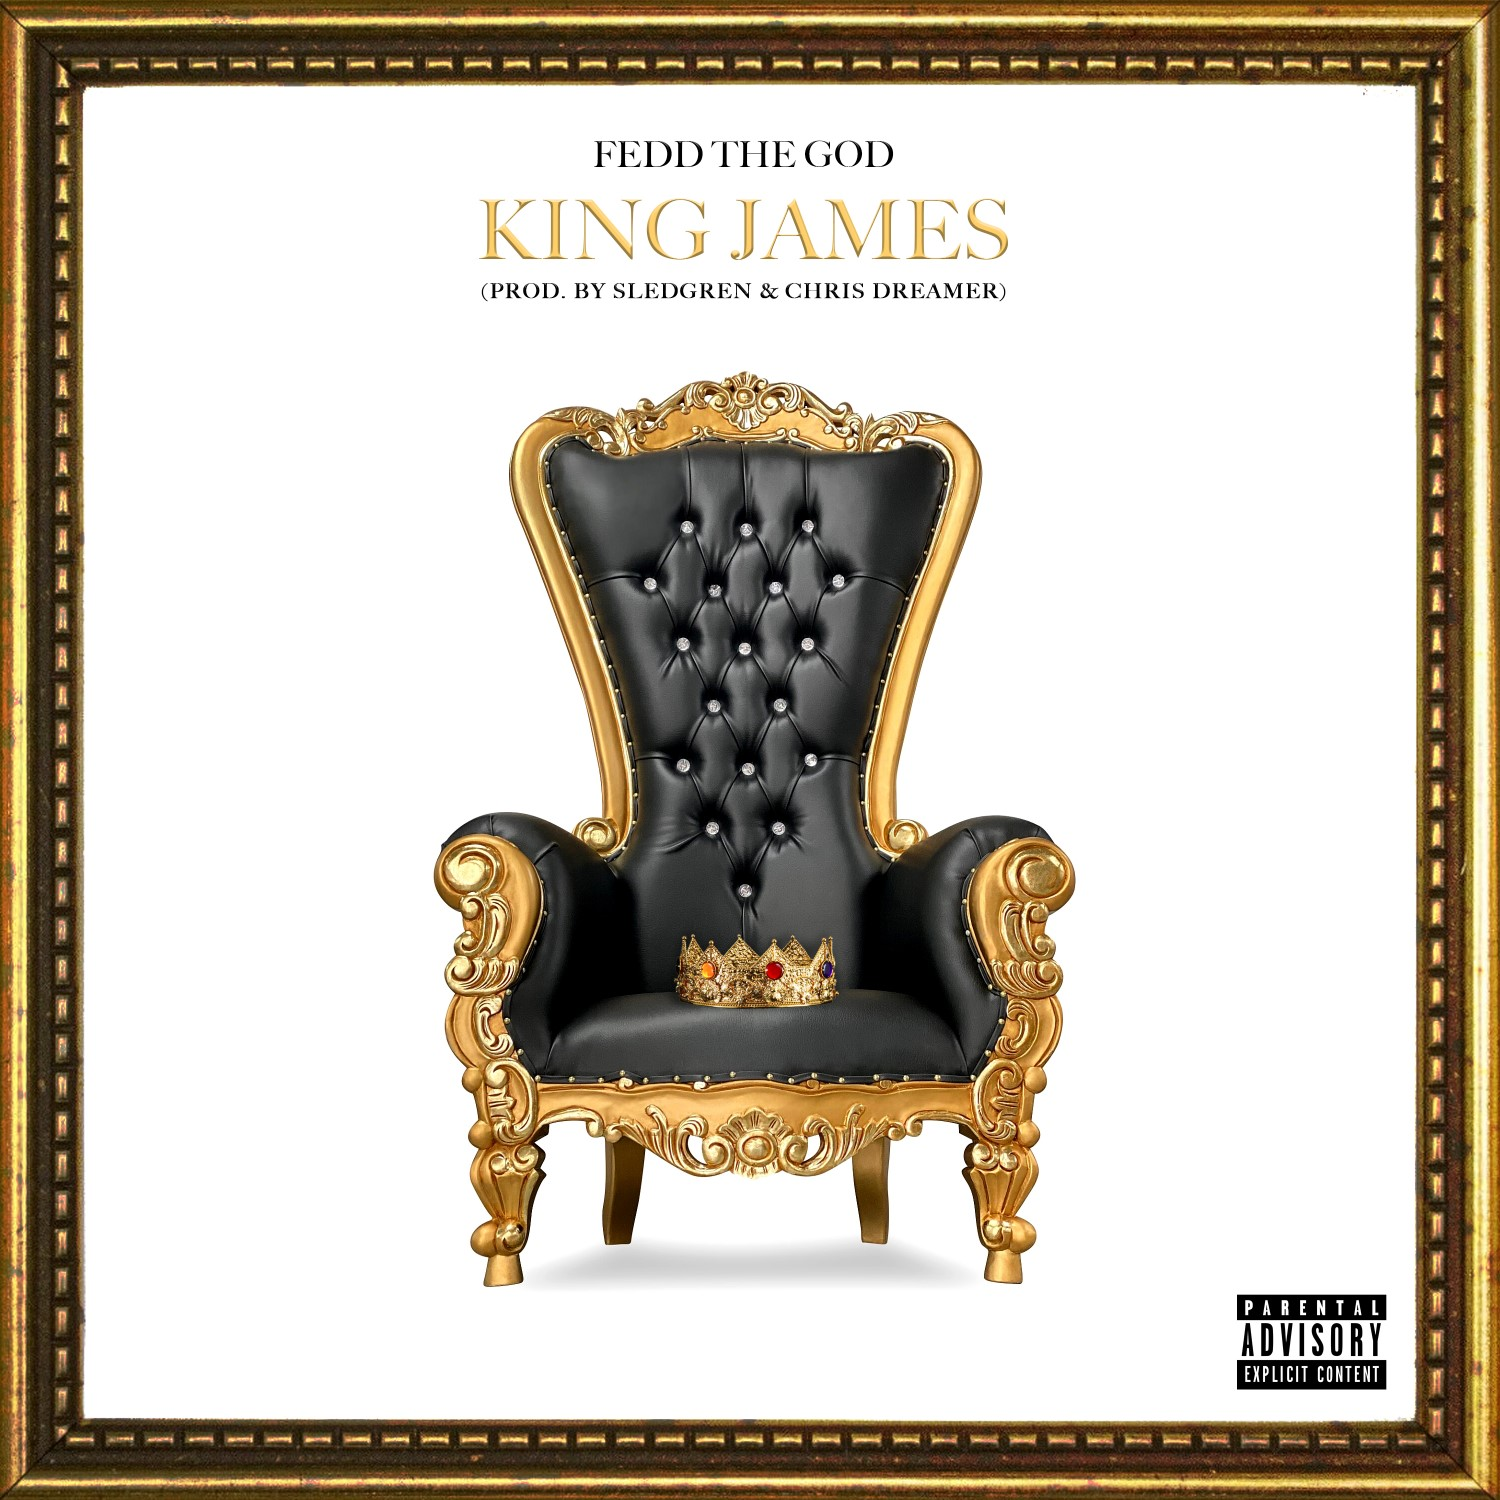 King James by Fedd the God